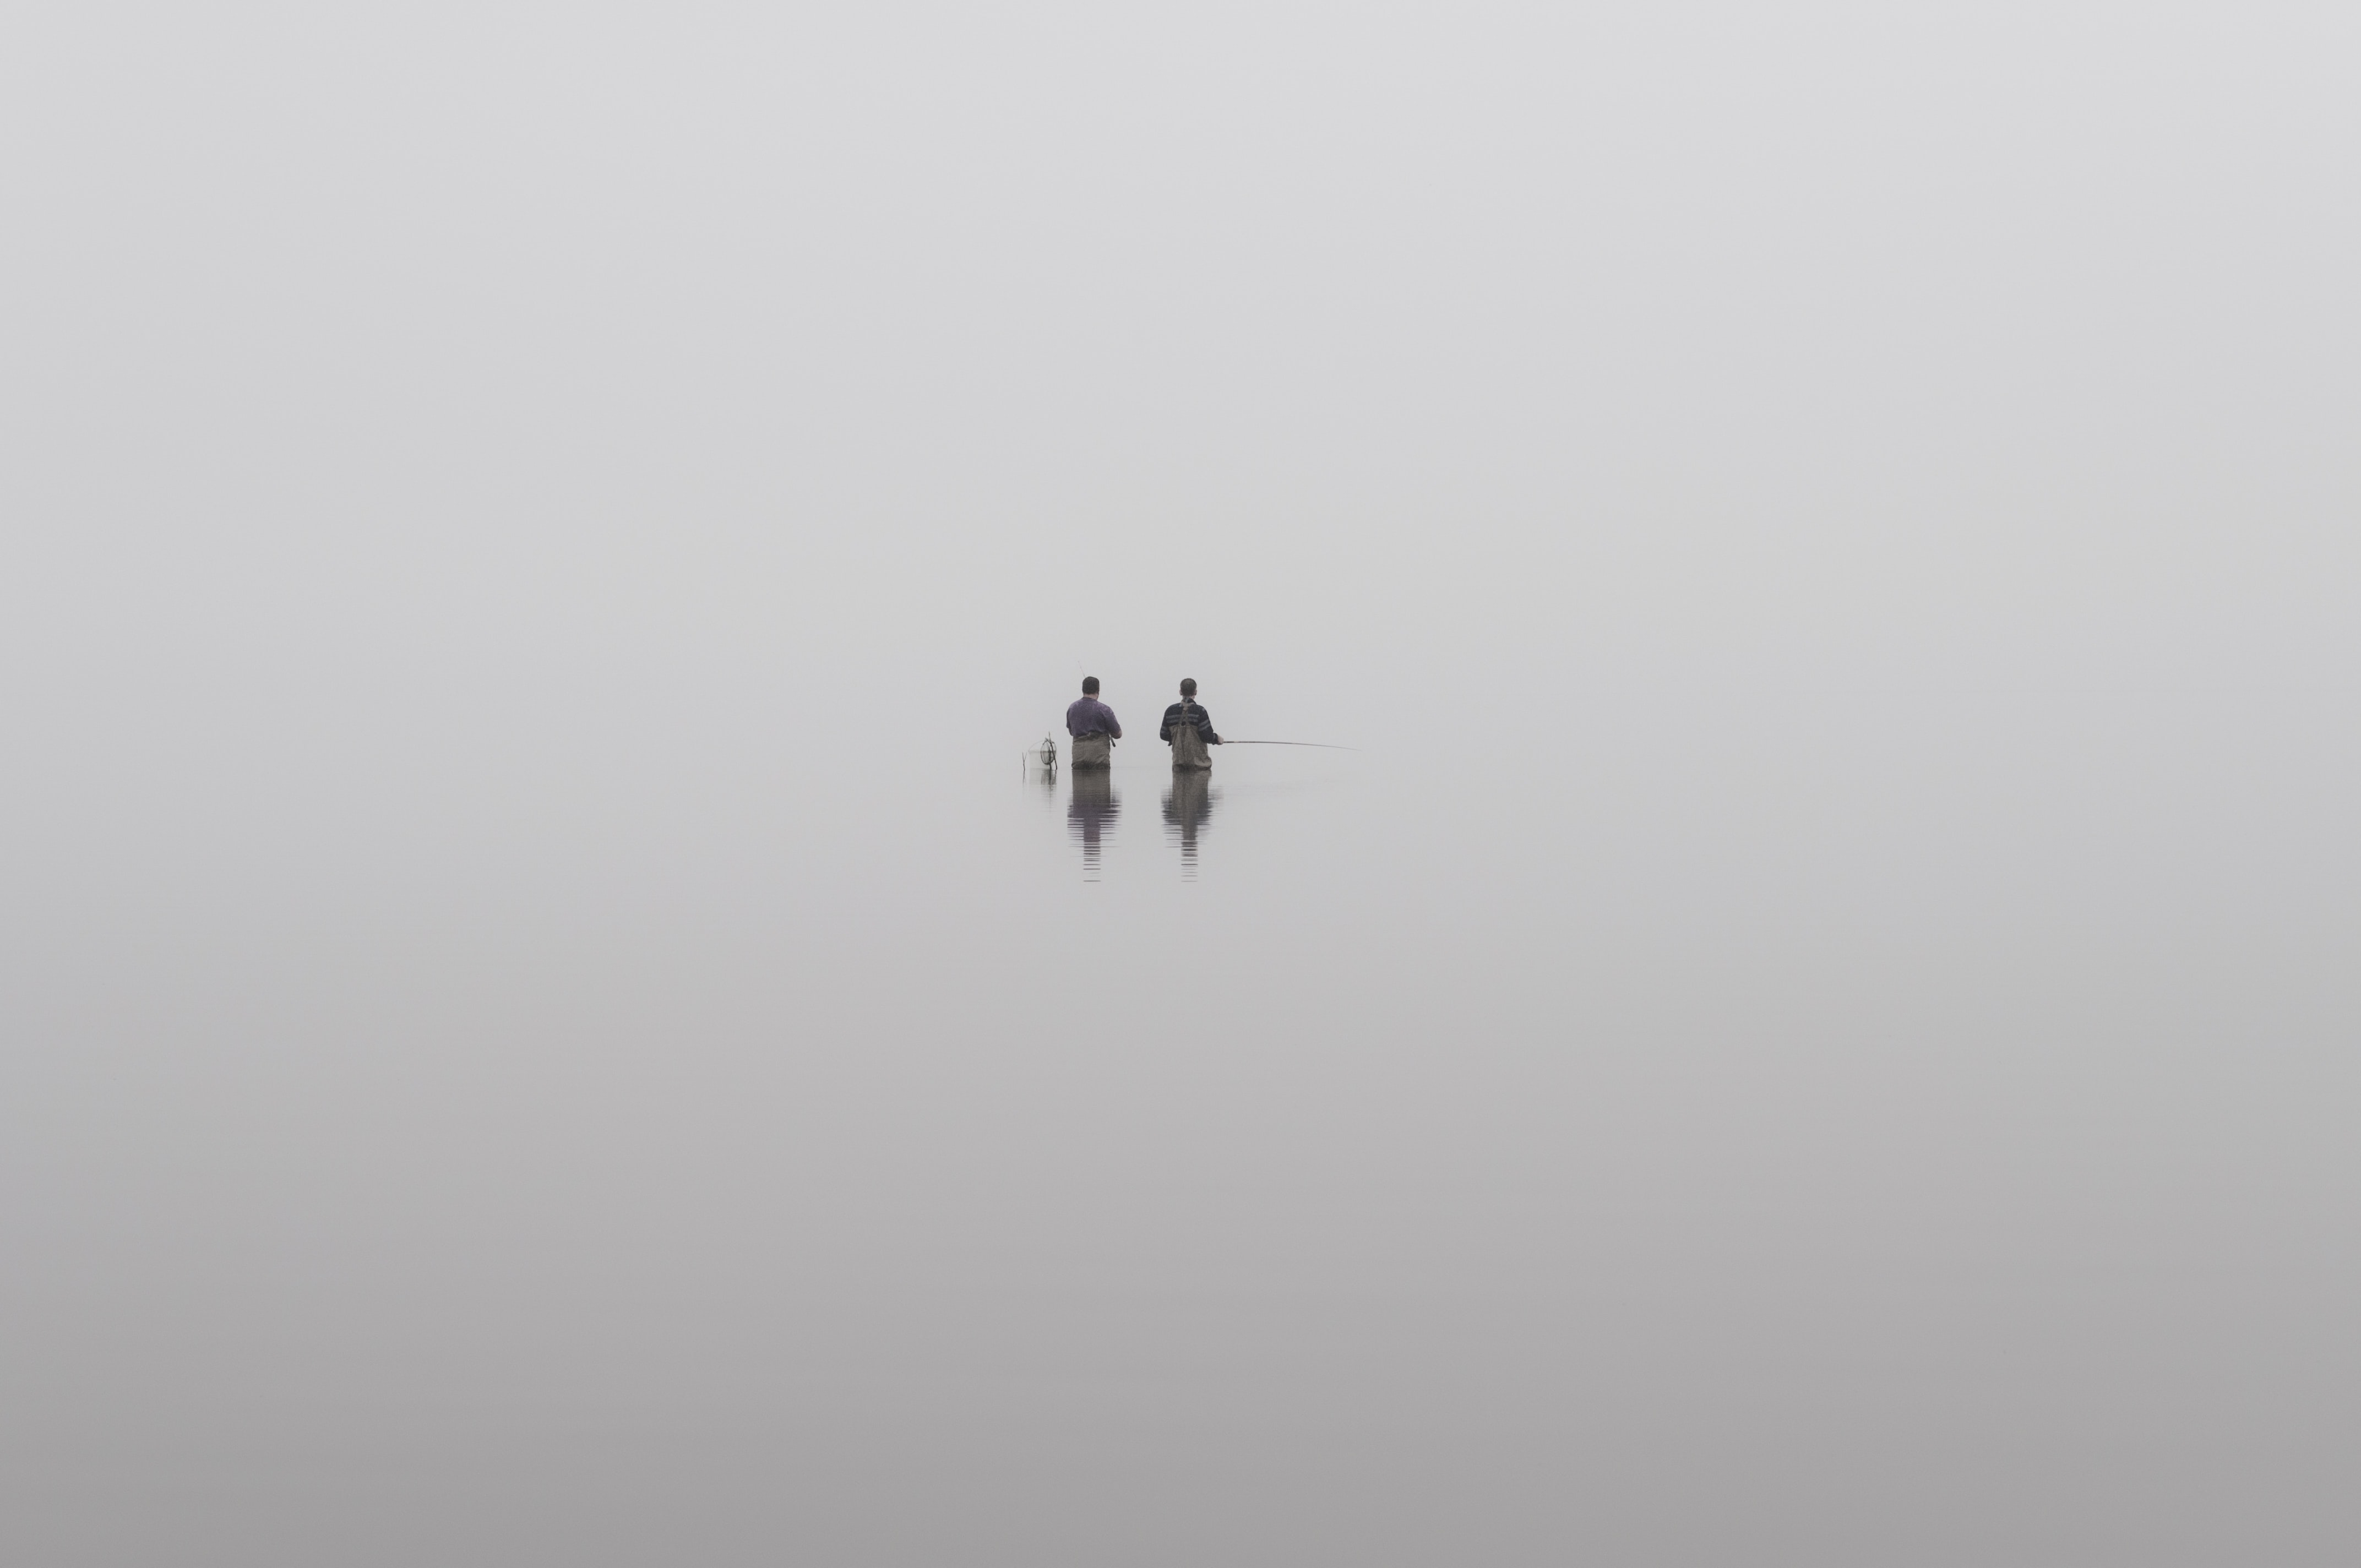 two people holding fishing rod in boat